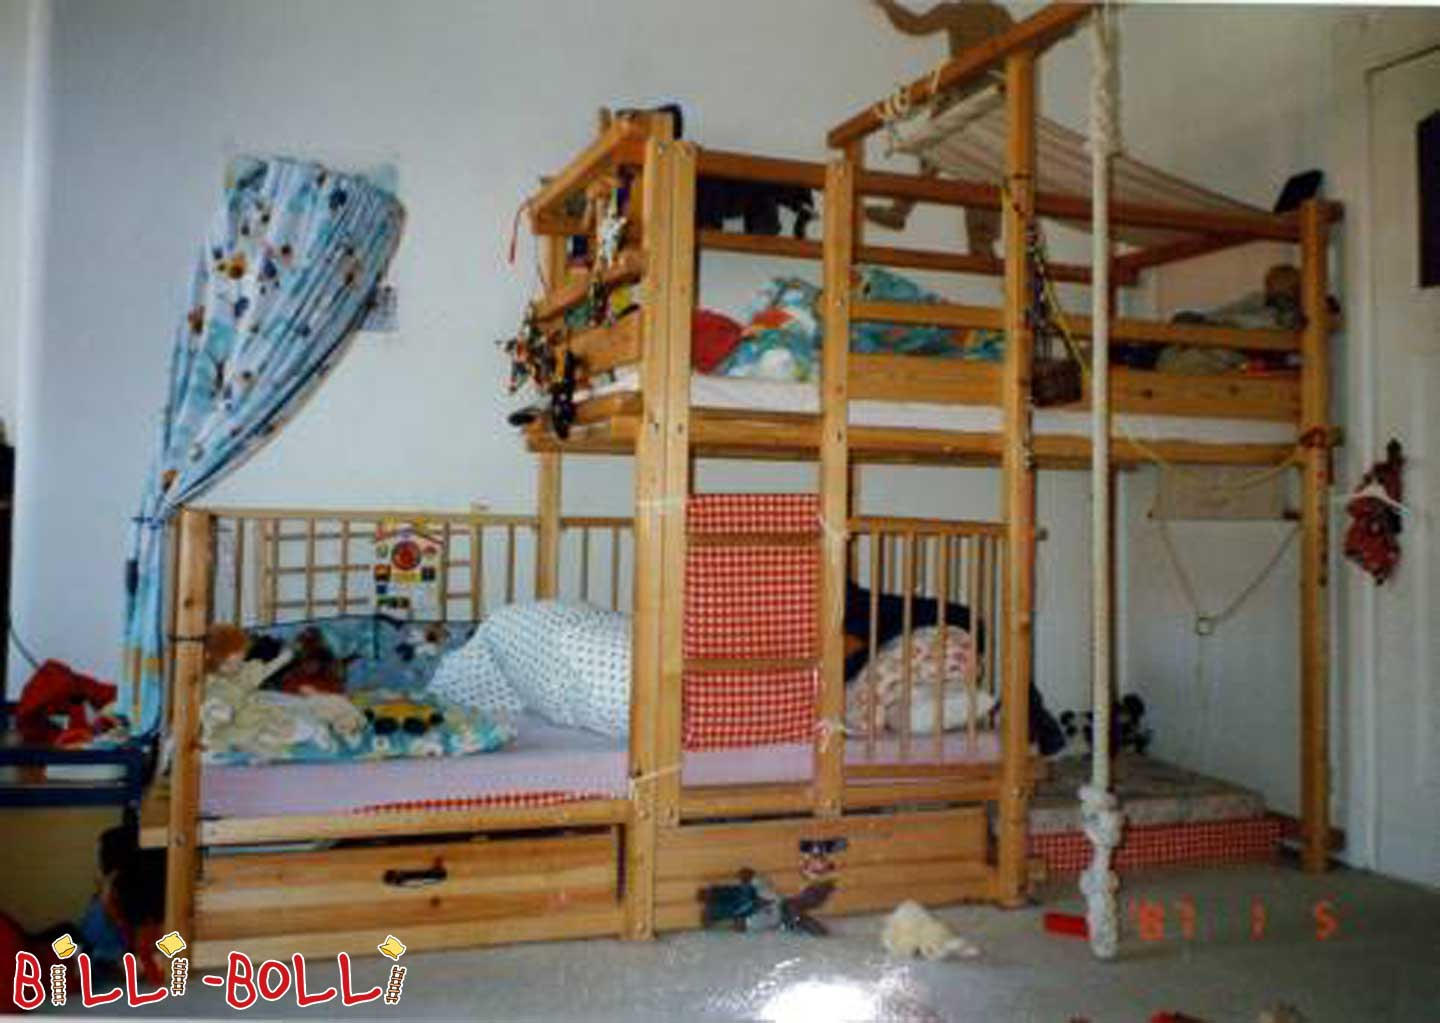 Gullibo bunk bed sit-offset (second hand bunk bed)